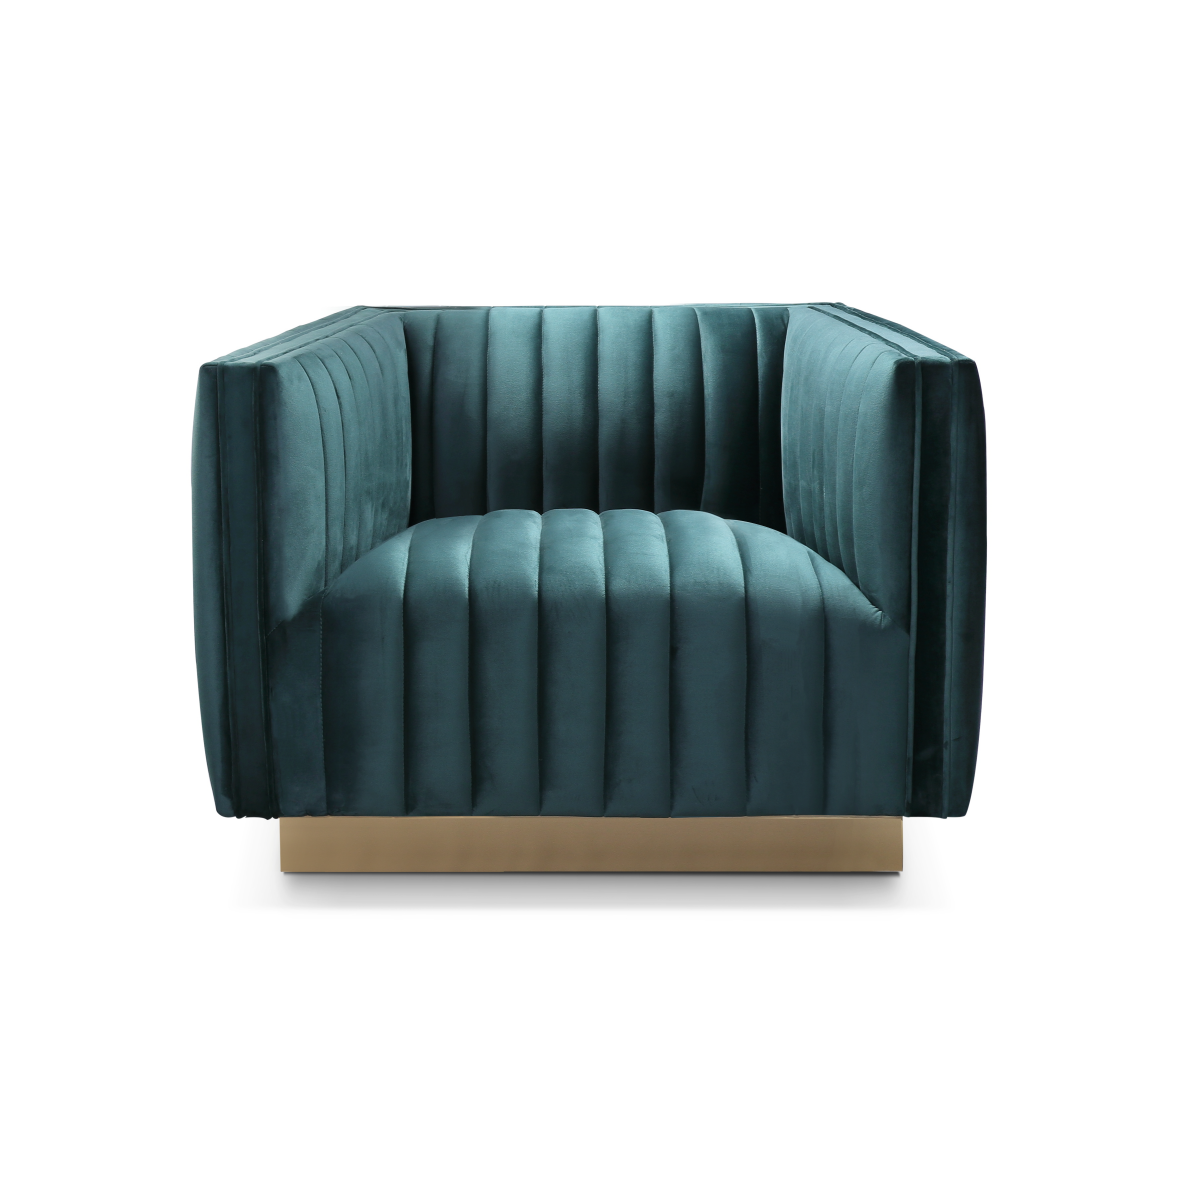 Emerald Armchair Sofa - mhomefurniture